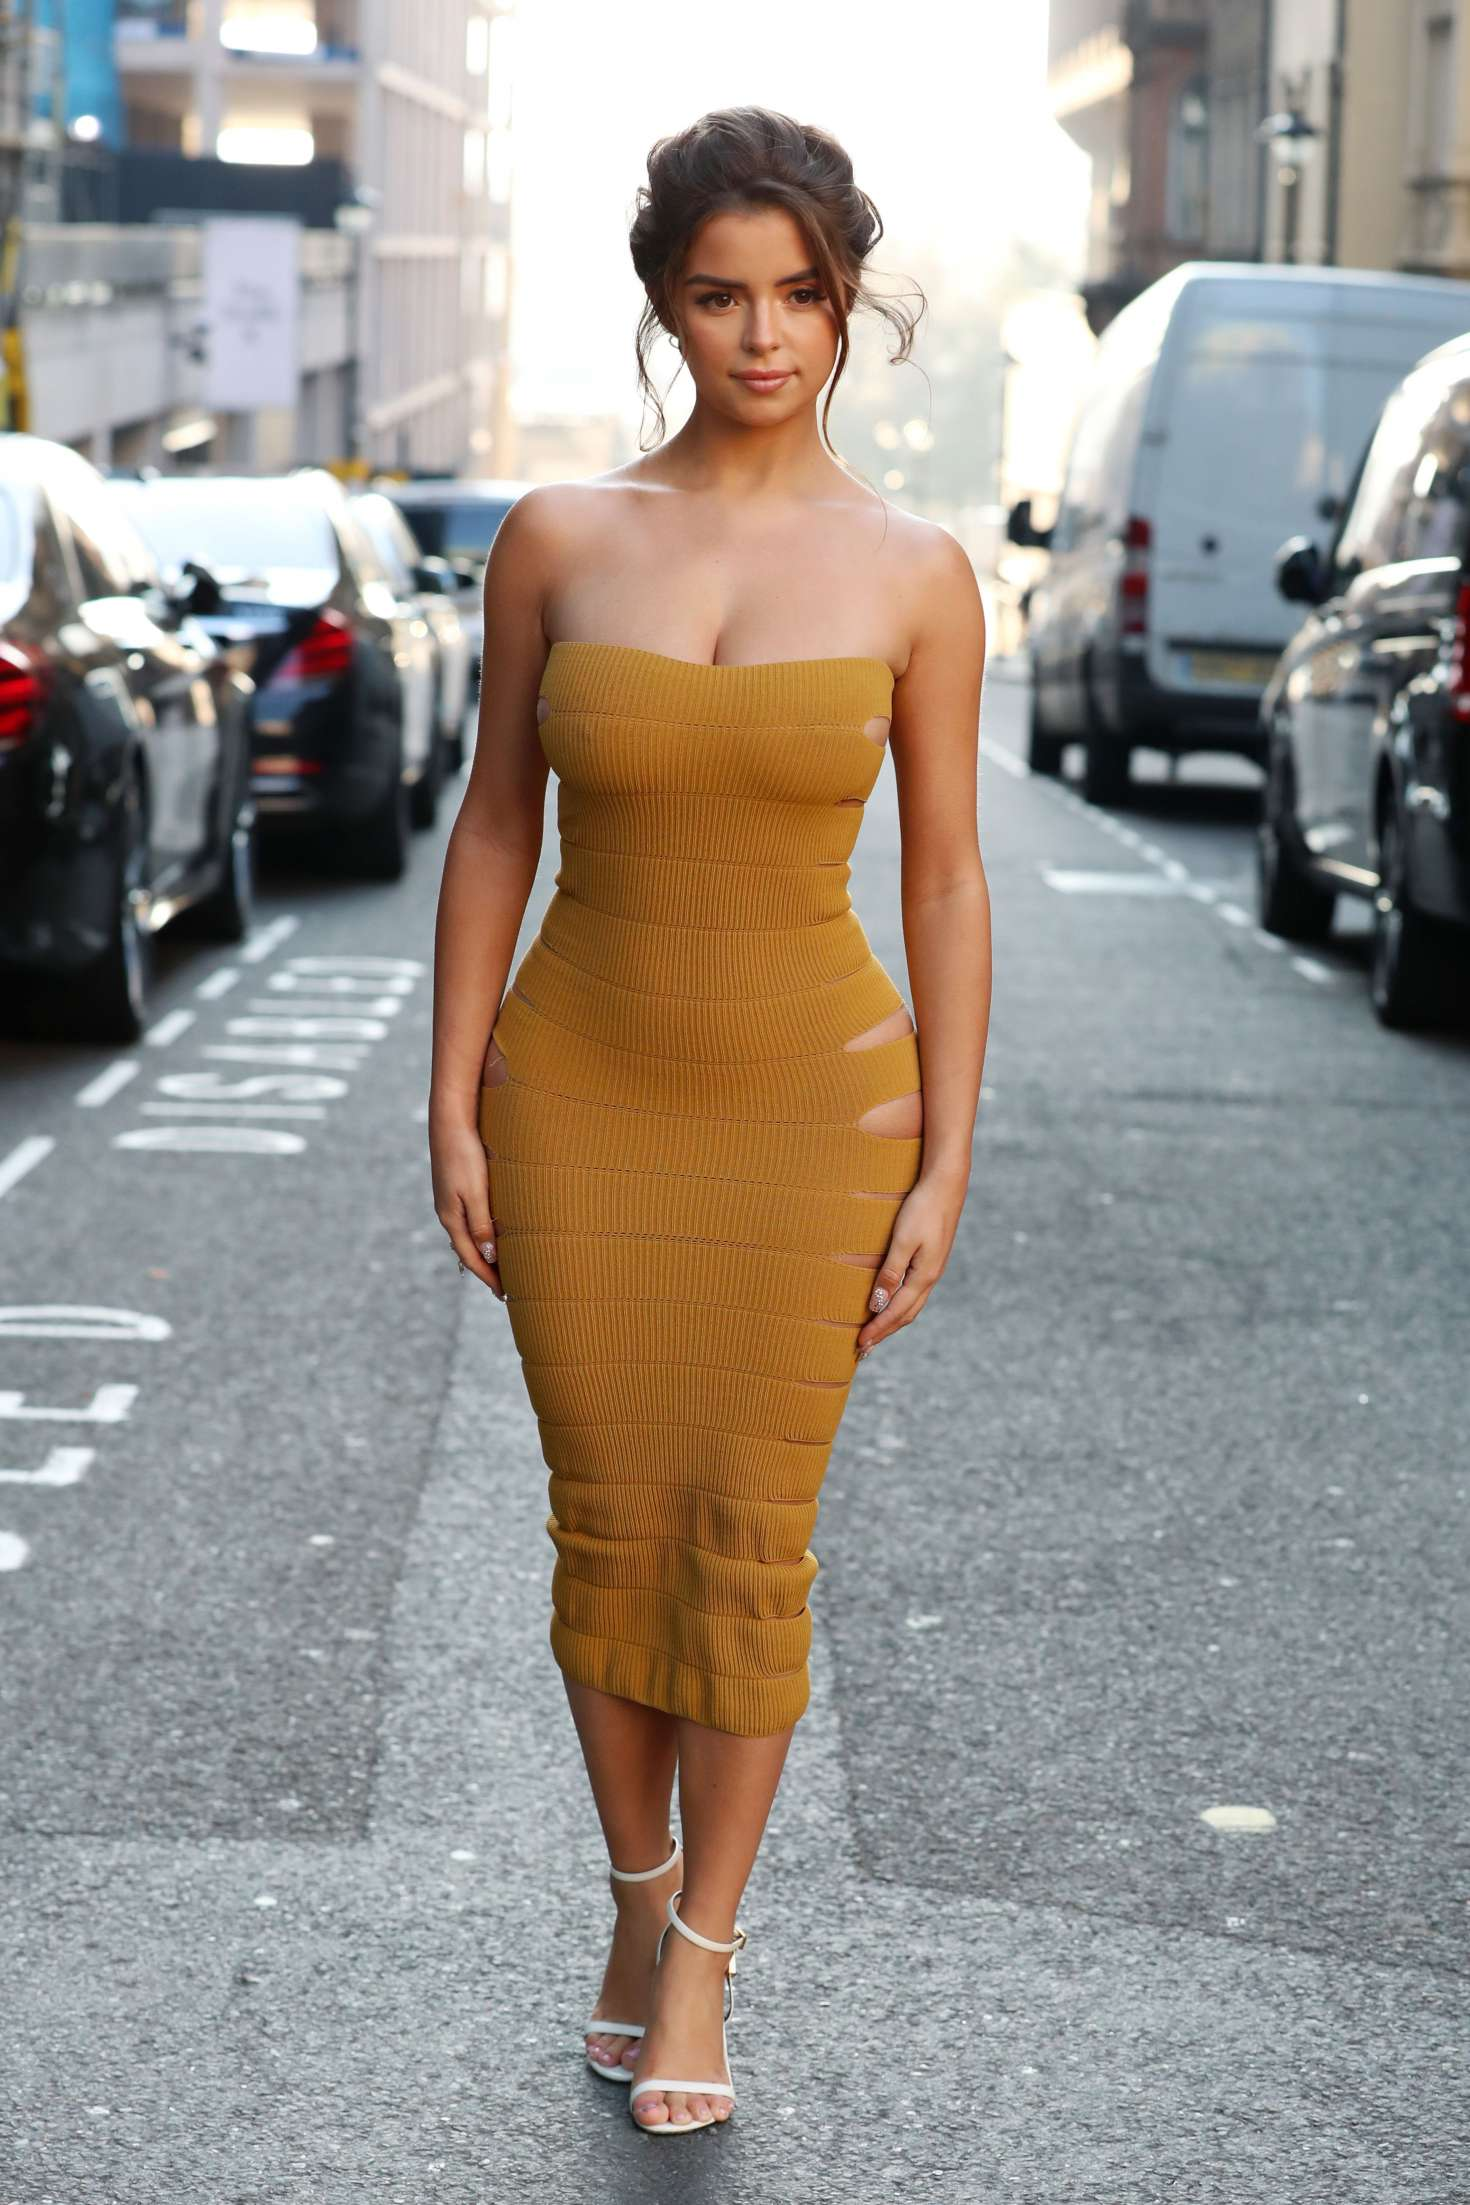 Demi Rose In Tight Dress – Out And About In London